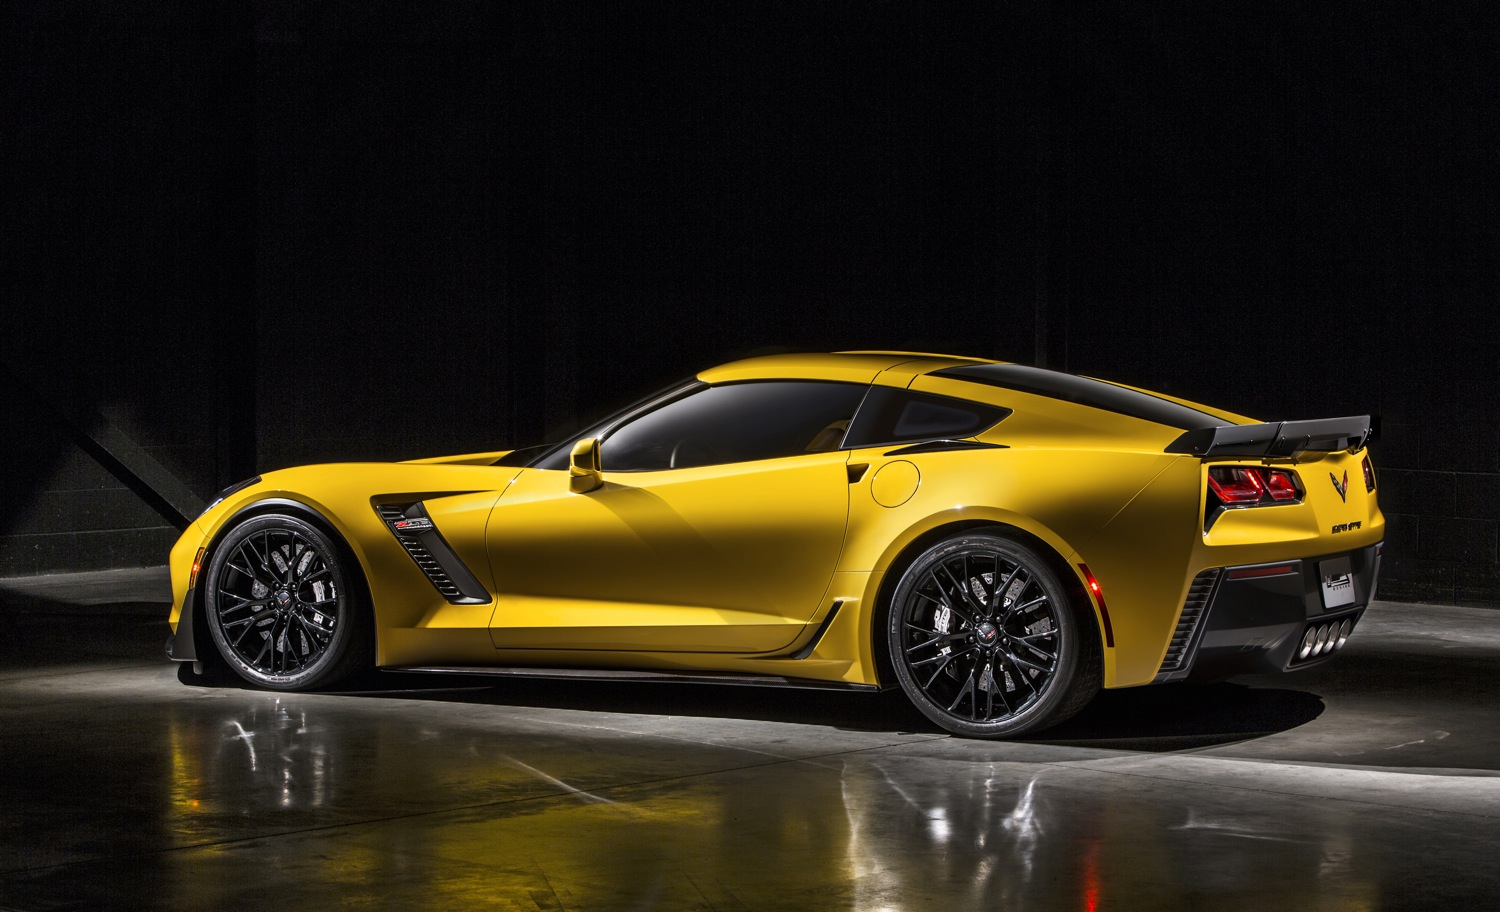 New Corvette Race Car